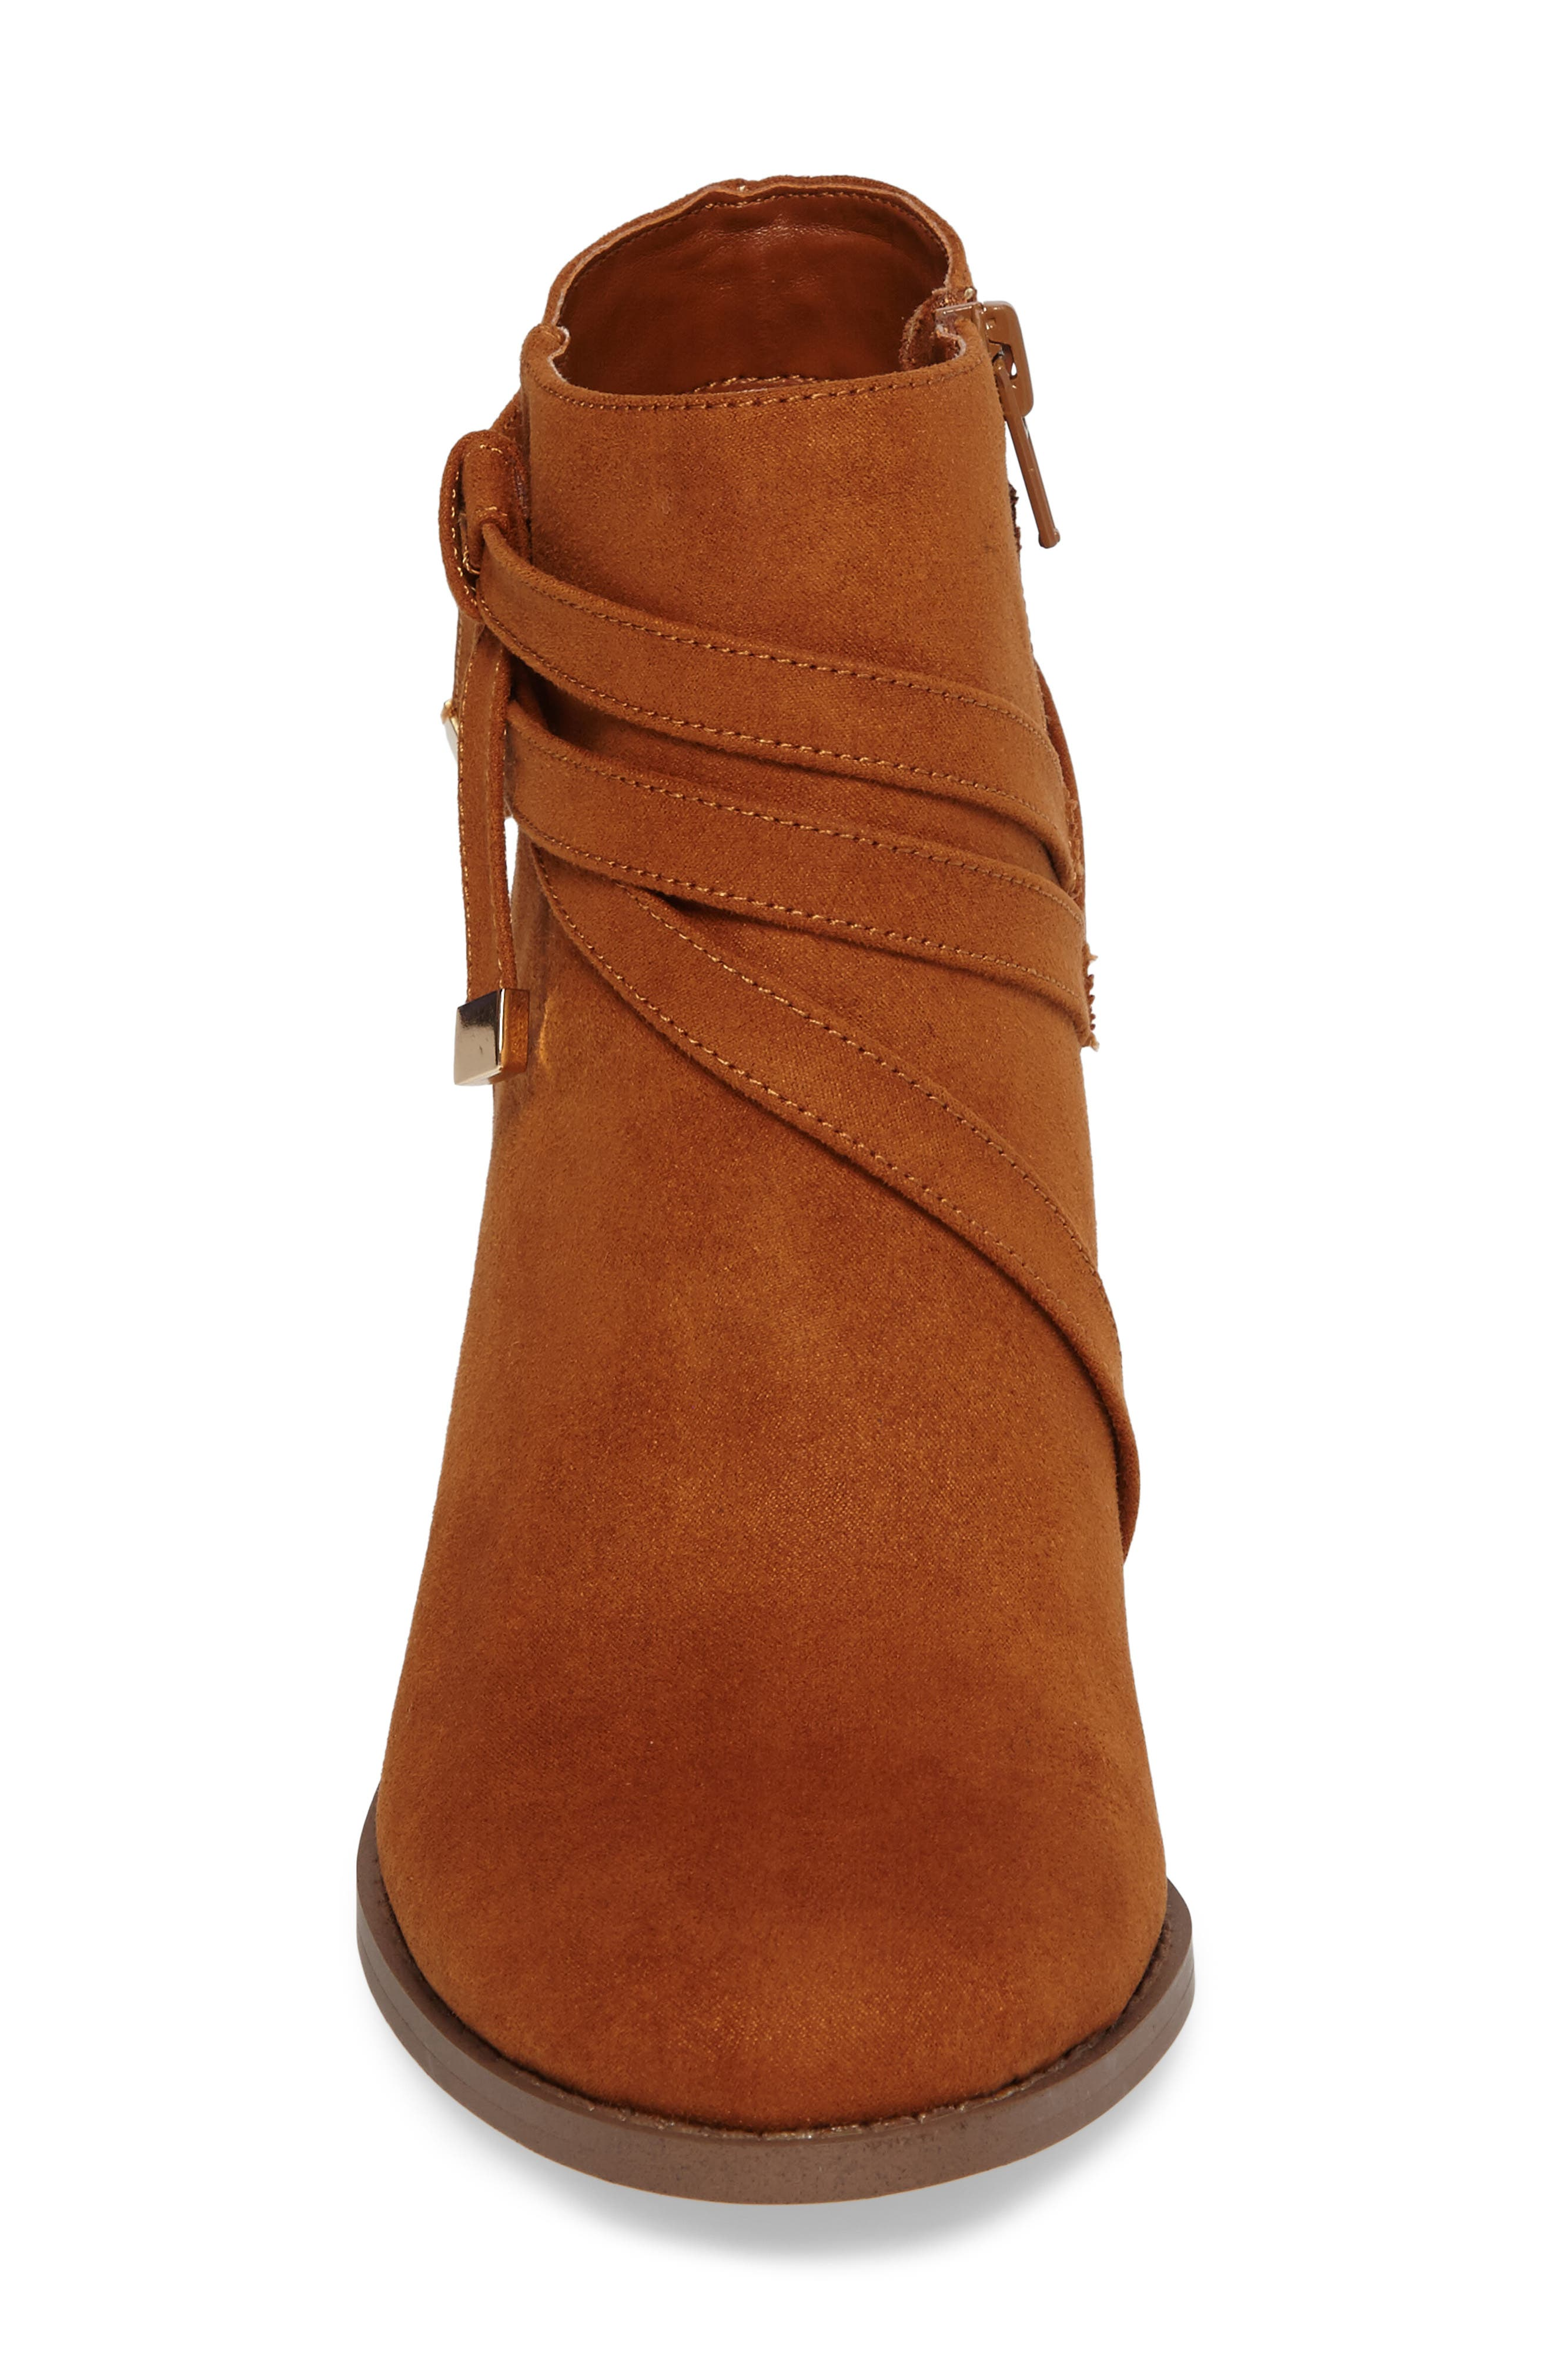 Renly Bootie,                             Alternate thumbnail 4, color,                             Tan Suede